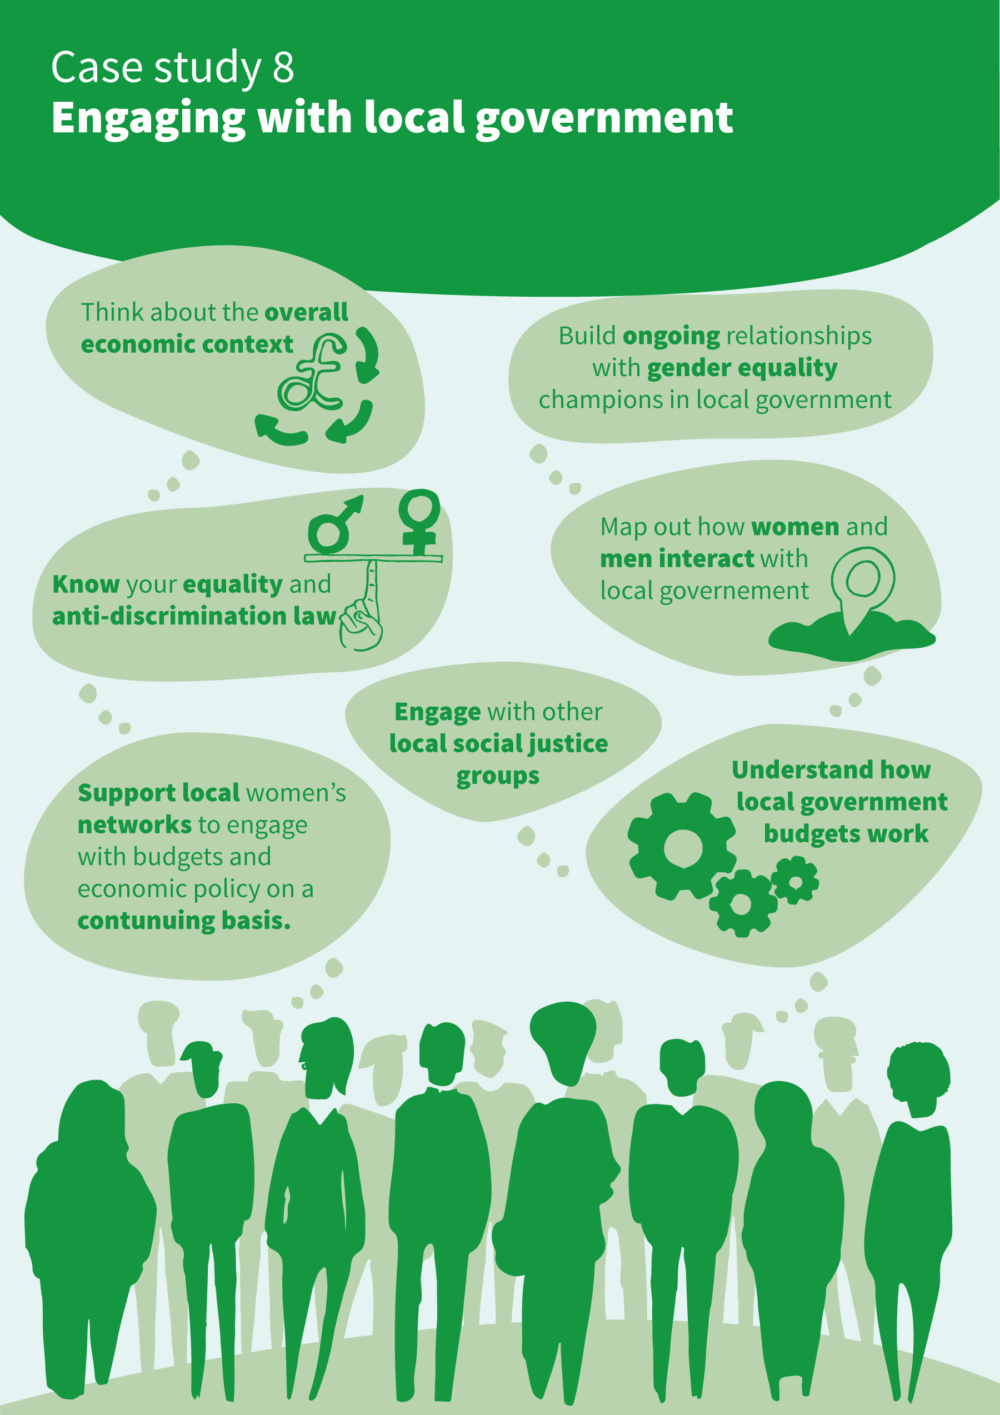 Infographic introducing the key issues around local government and gender responsive budgeting